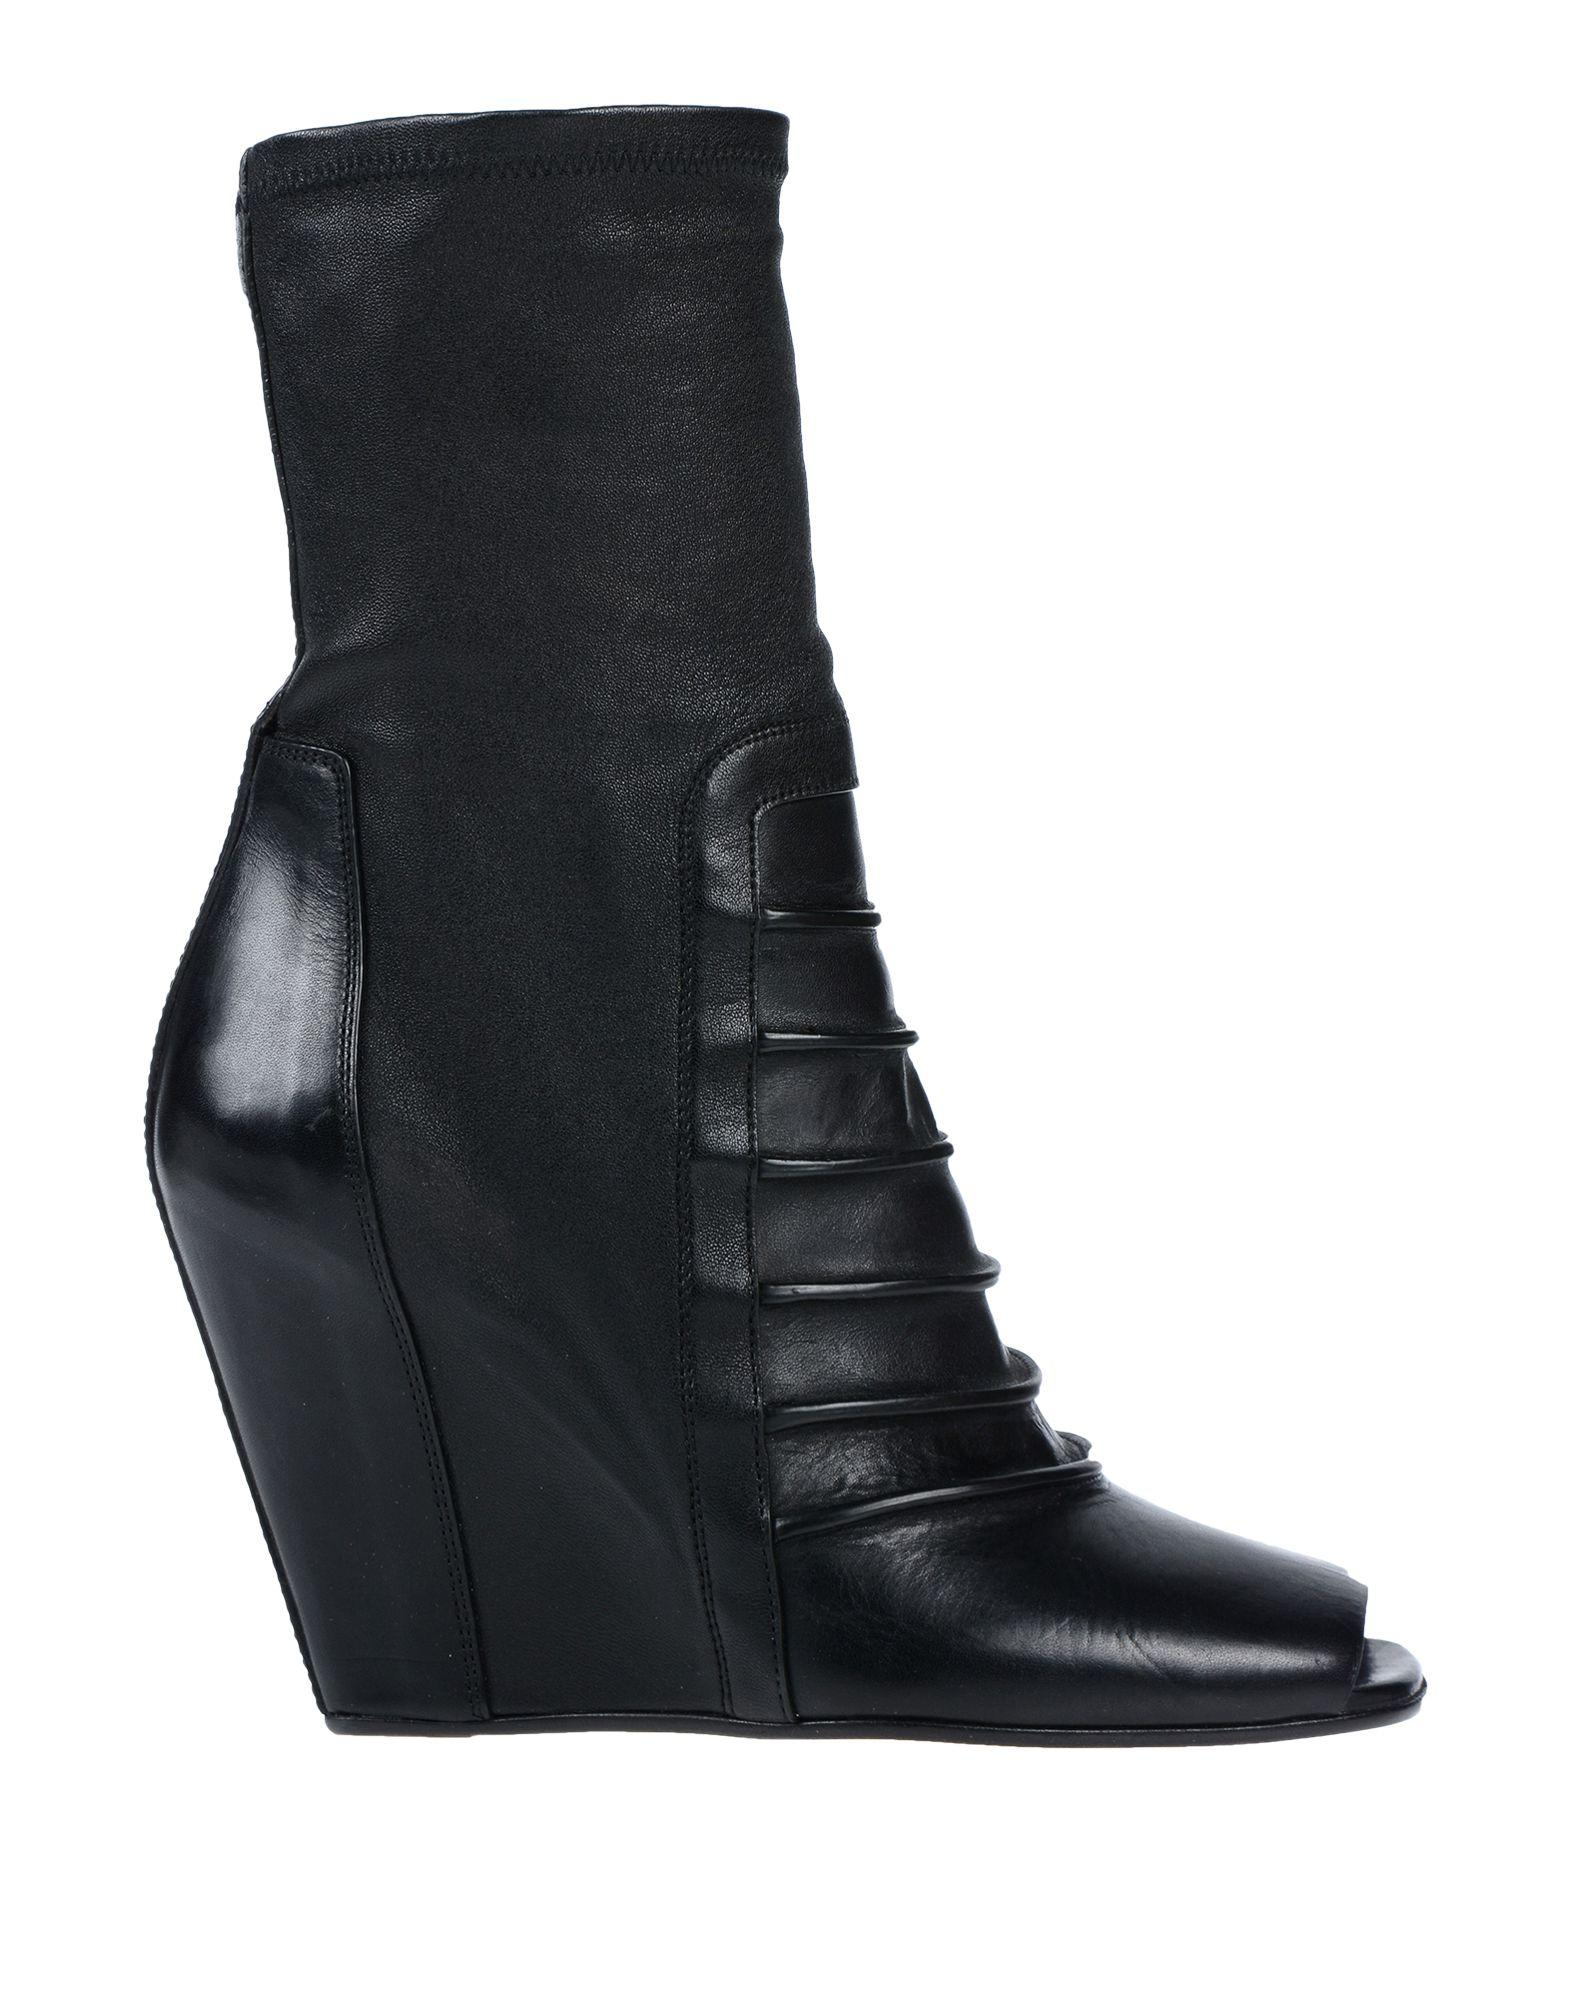 a2aba8ff204b Lyst - Rick Owens Ankle Boots in Black